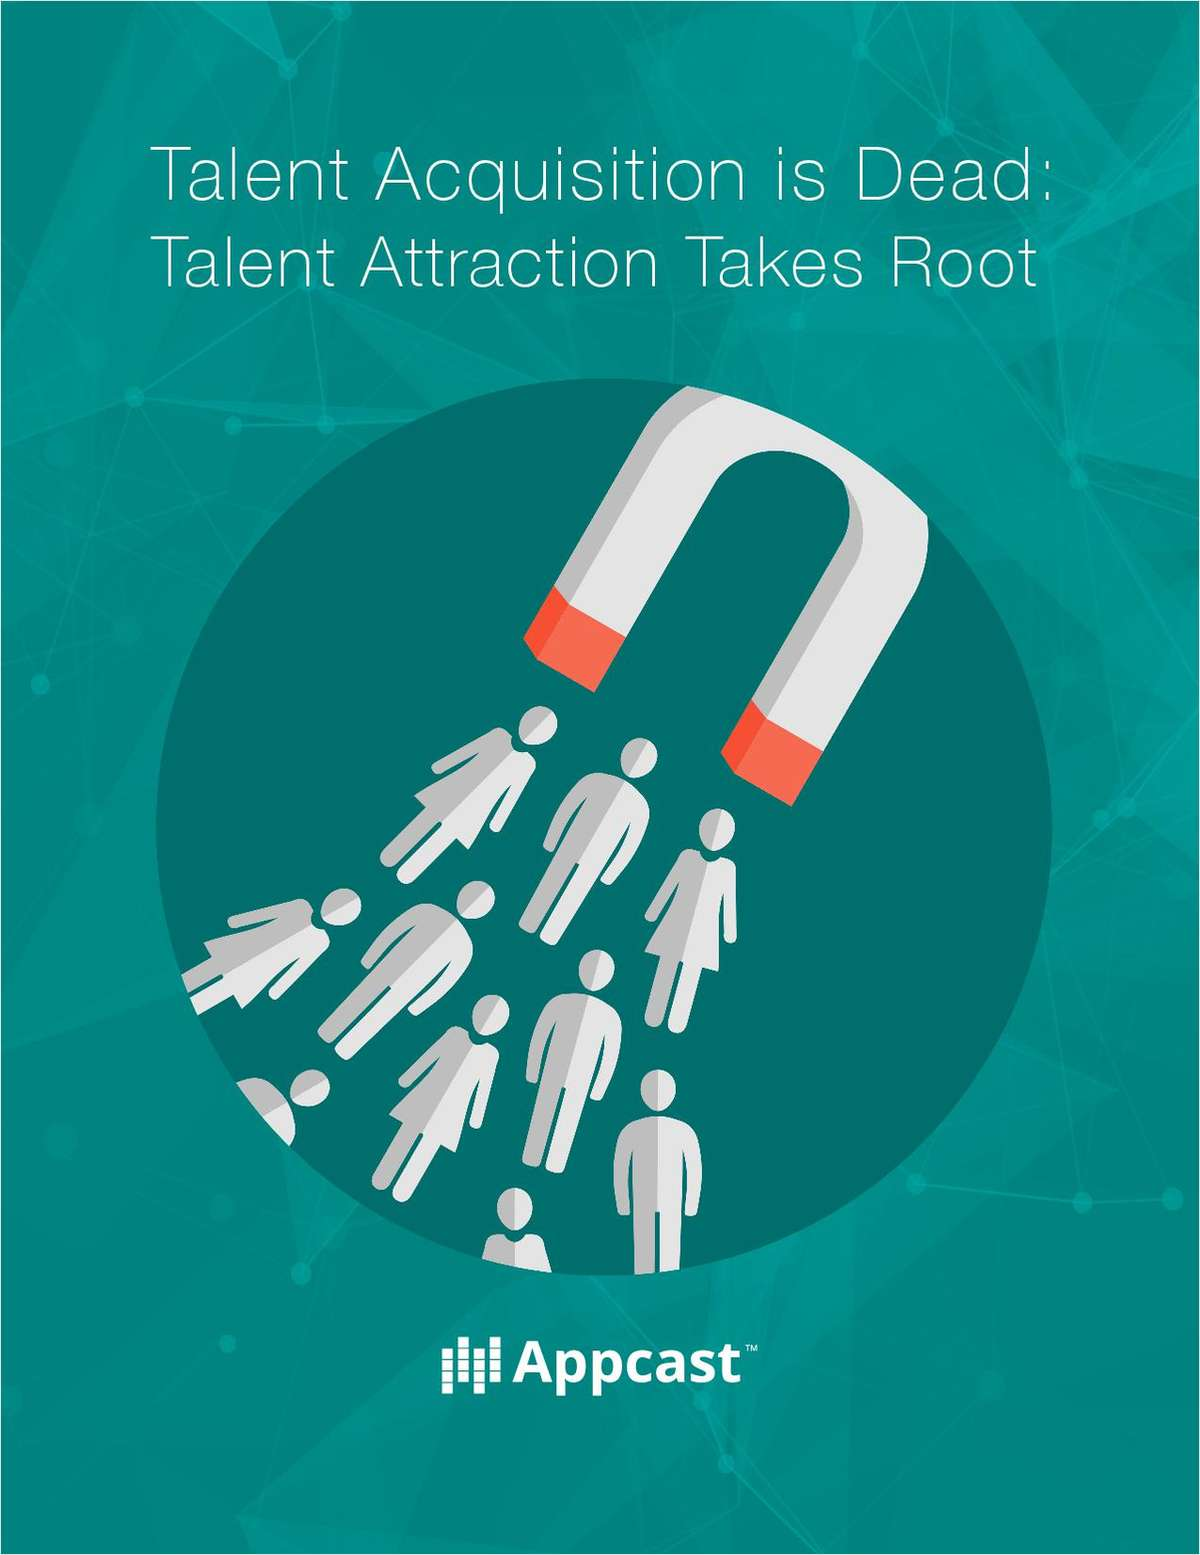 Talent Acquisition is Dead: Talent Attraction Takes Root